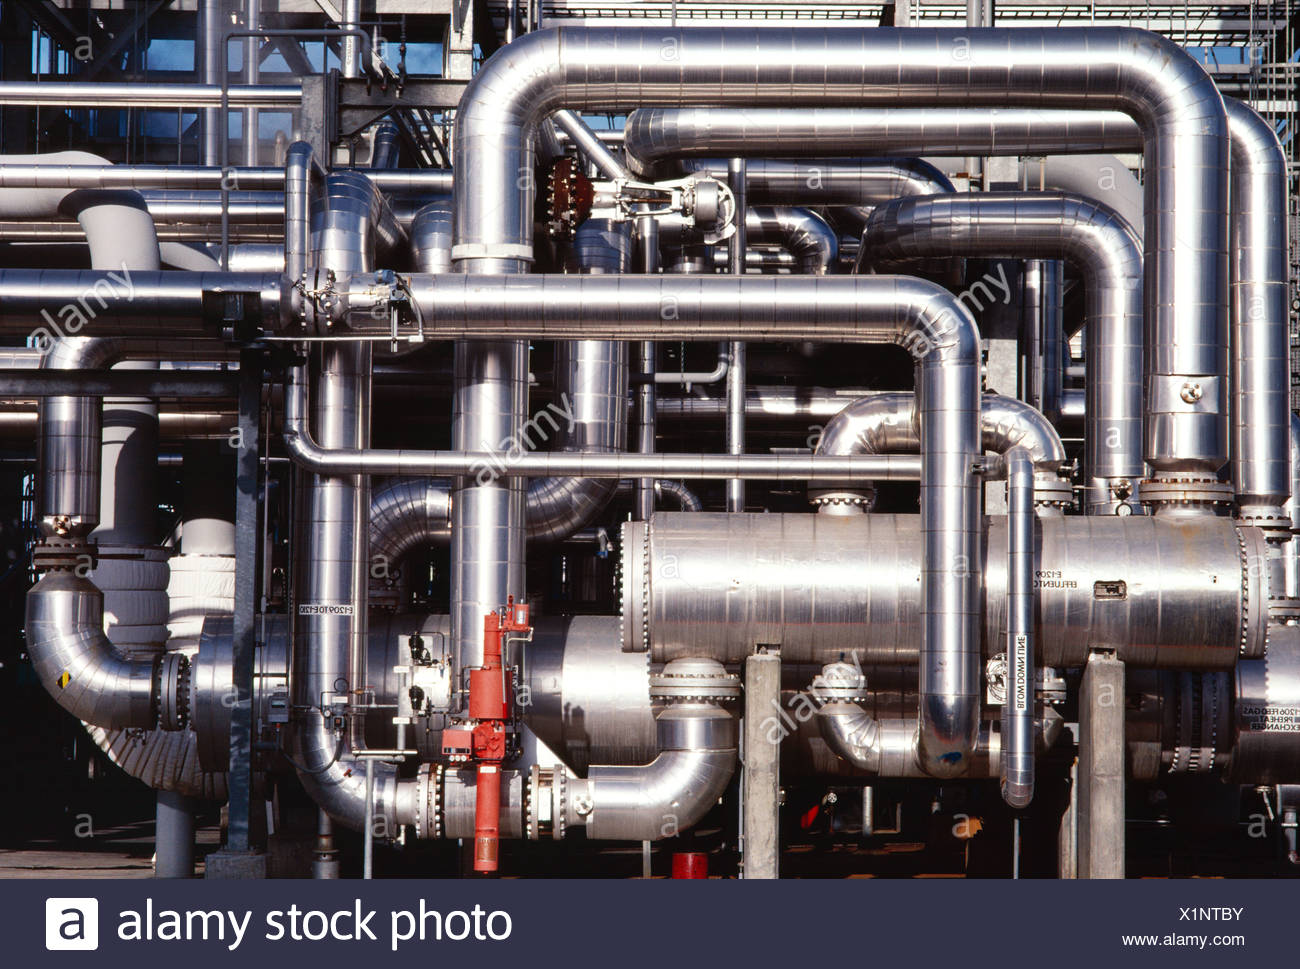 Oil Refinery pattern of pipes - Stock Image